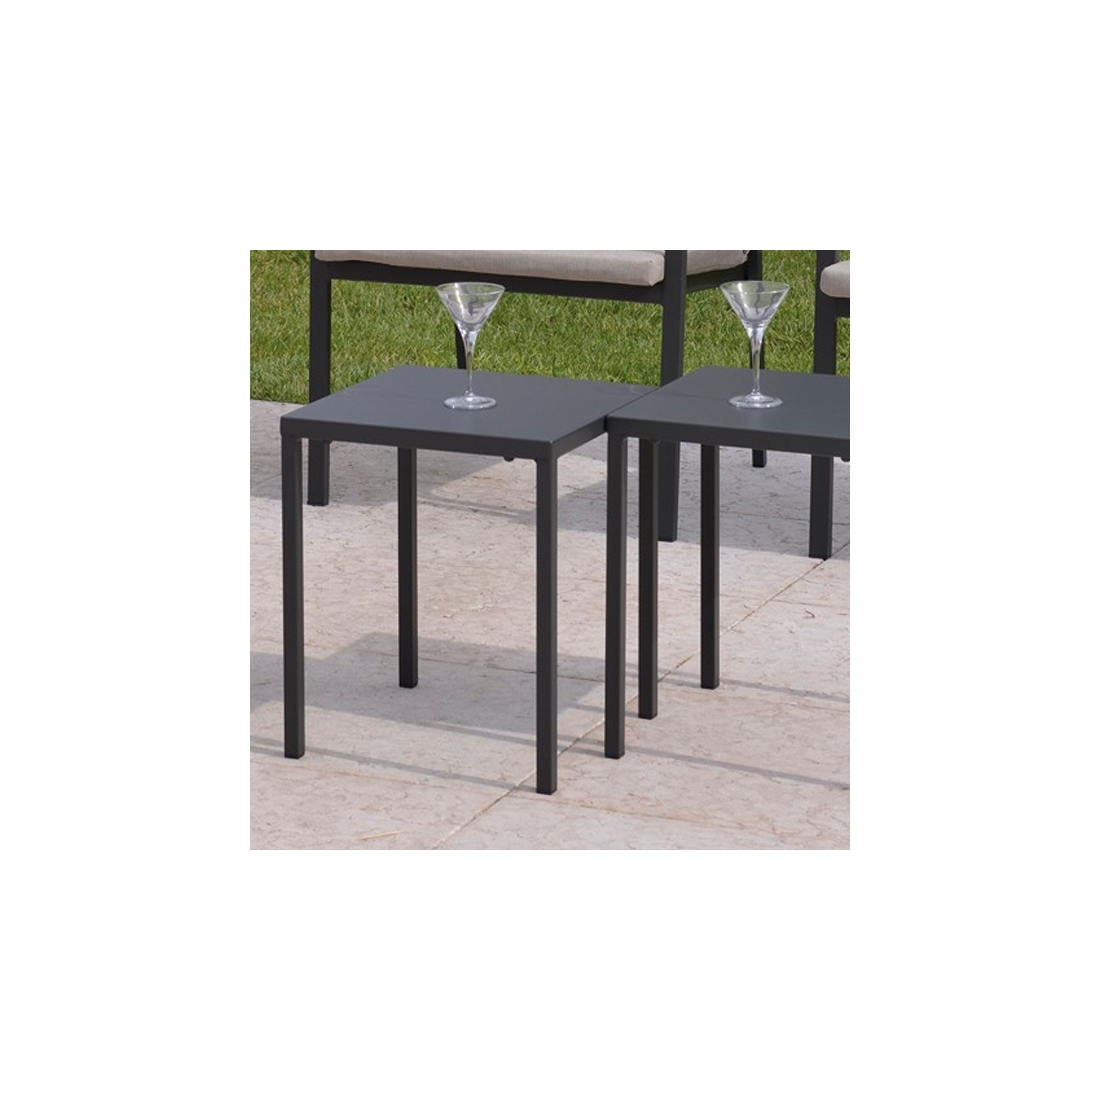 Petite table basse ronde jardin for Petite table basse de salon